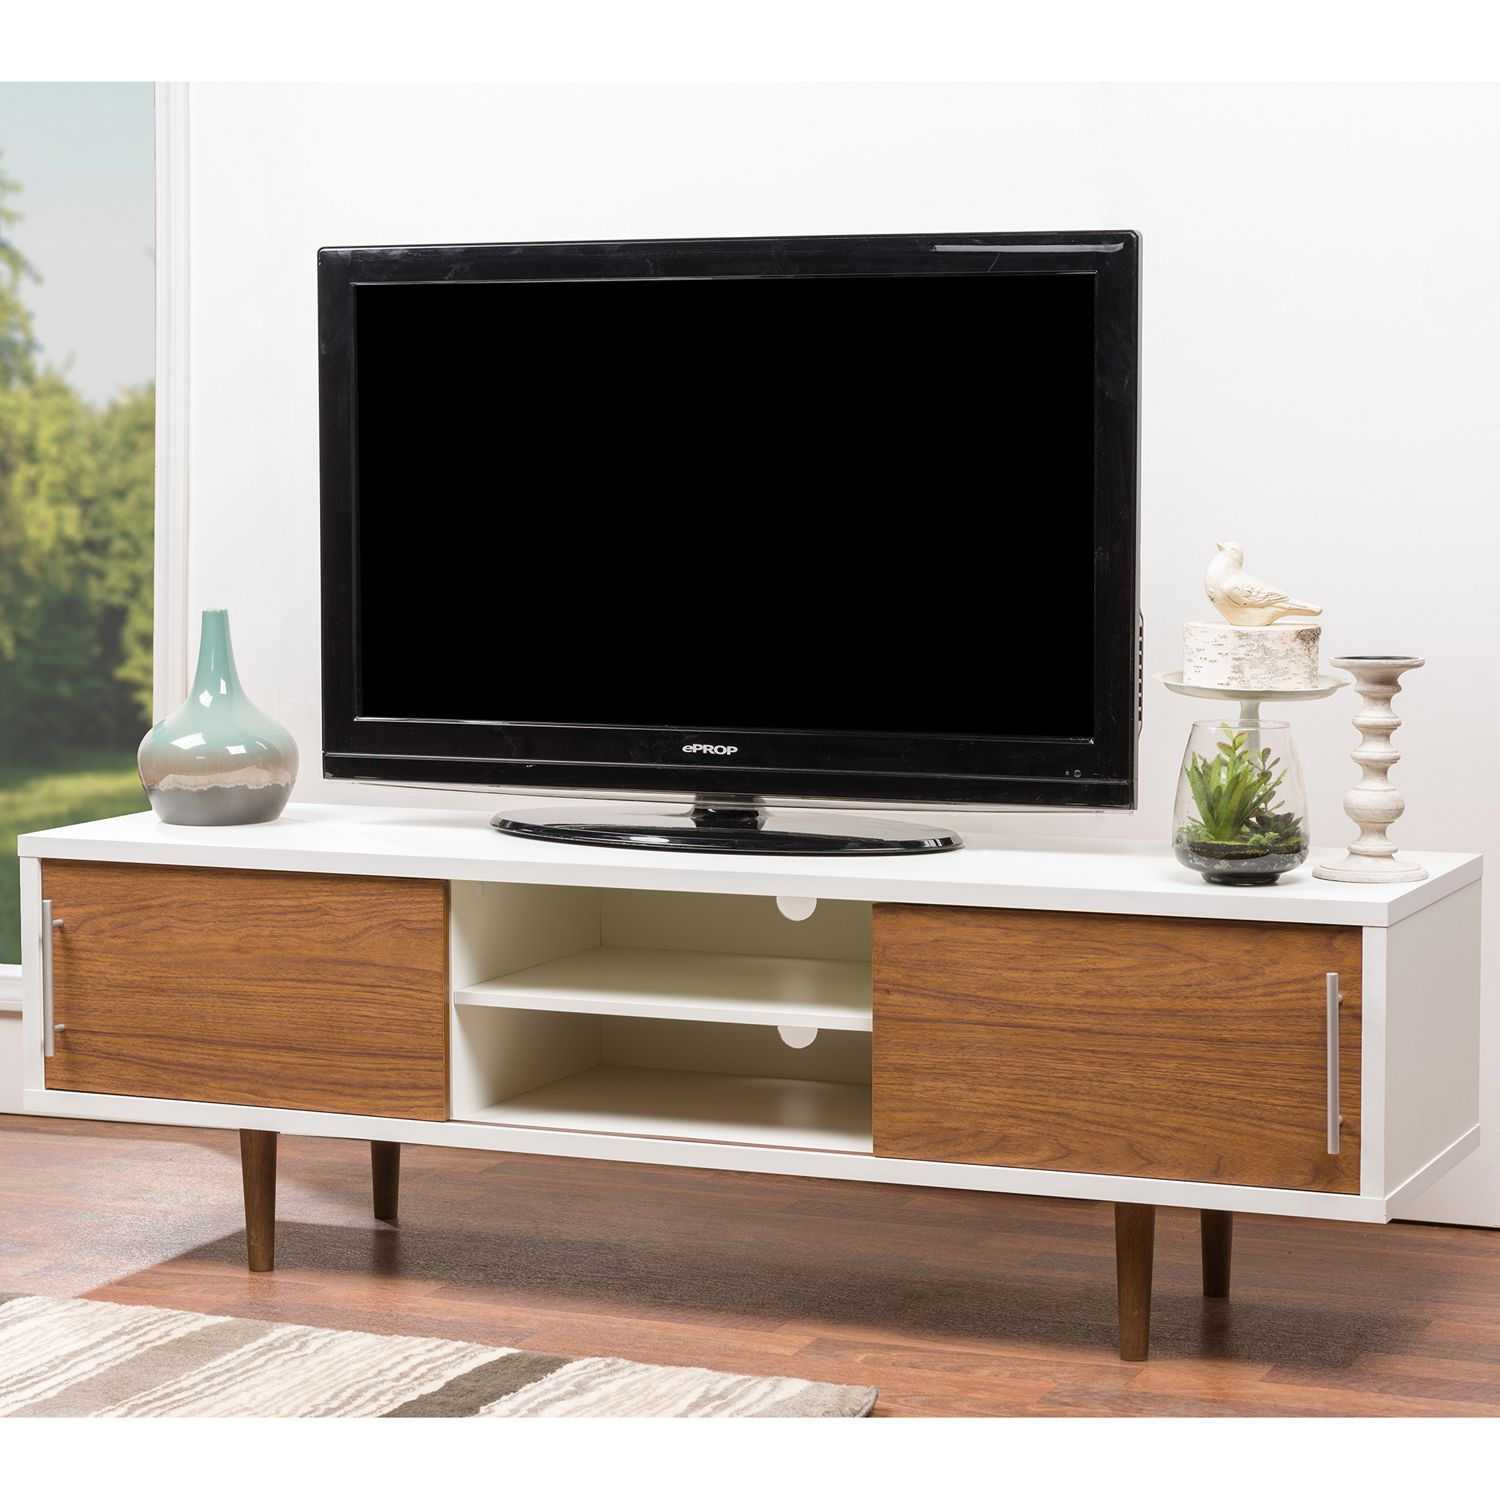 Twin Tones Intertwine Intensely In Our Gemini Wood Contemporary Tv  # Table De Television En Bois